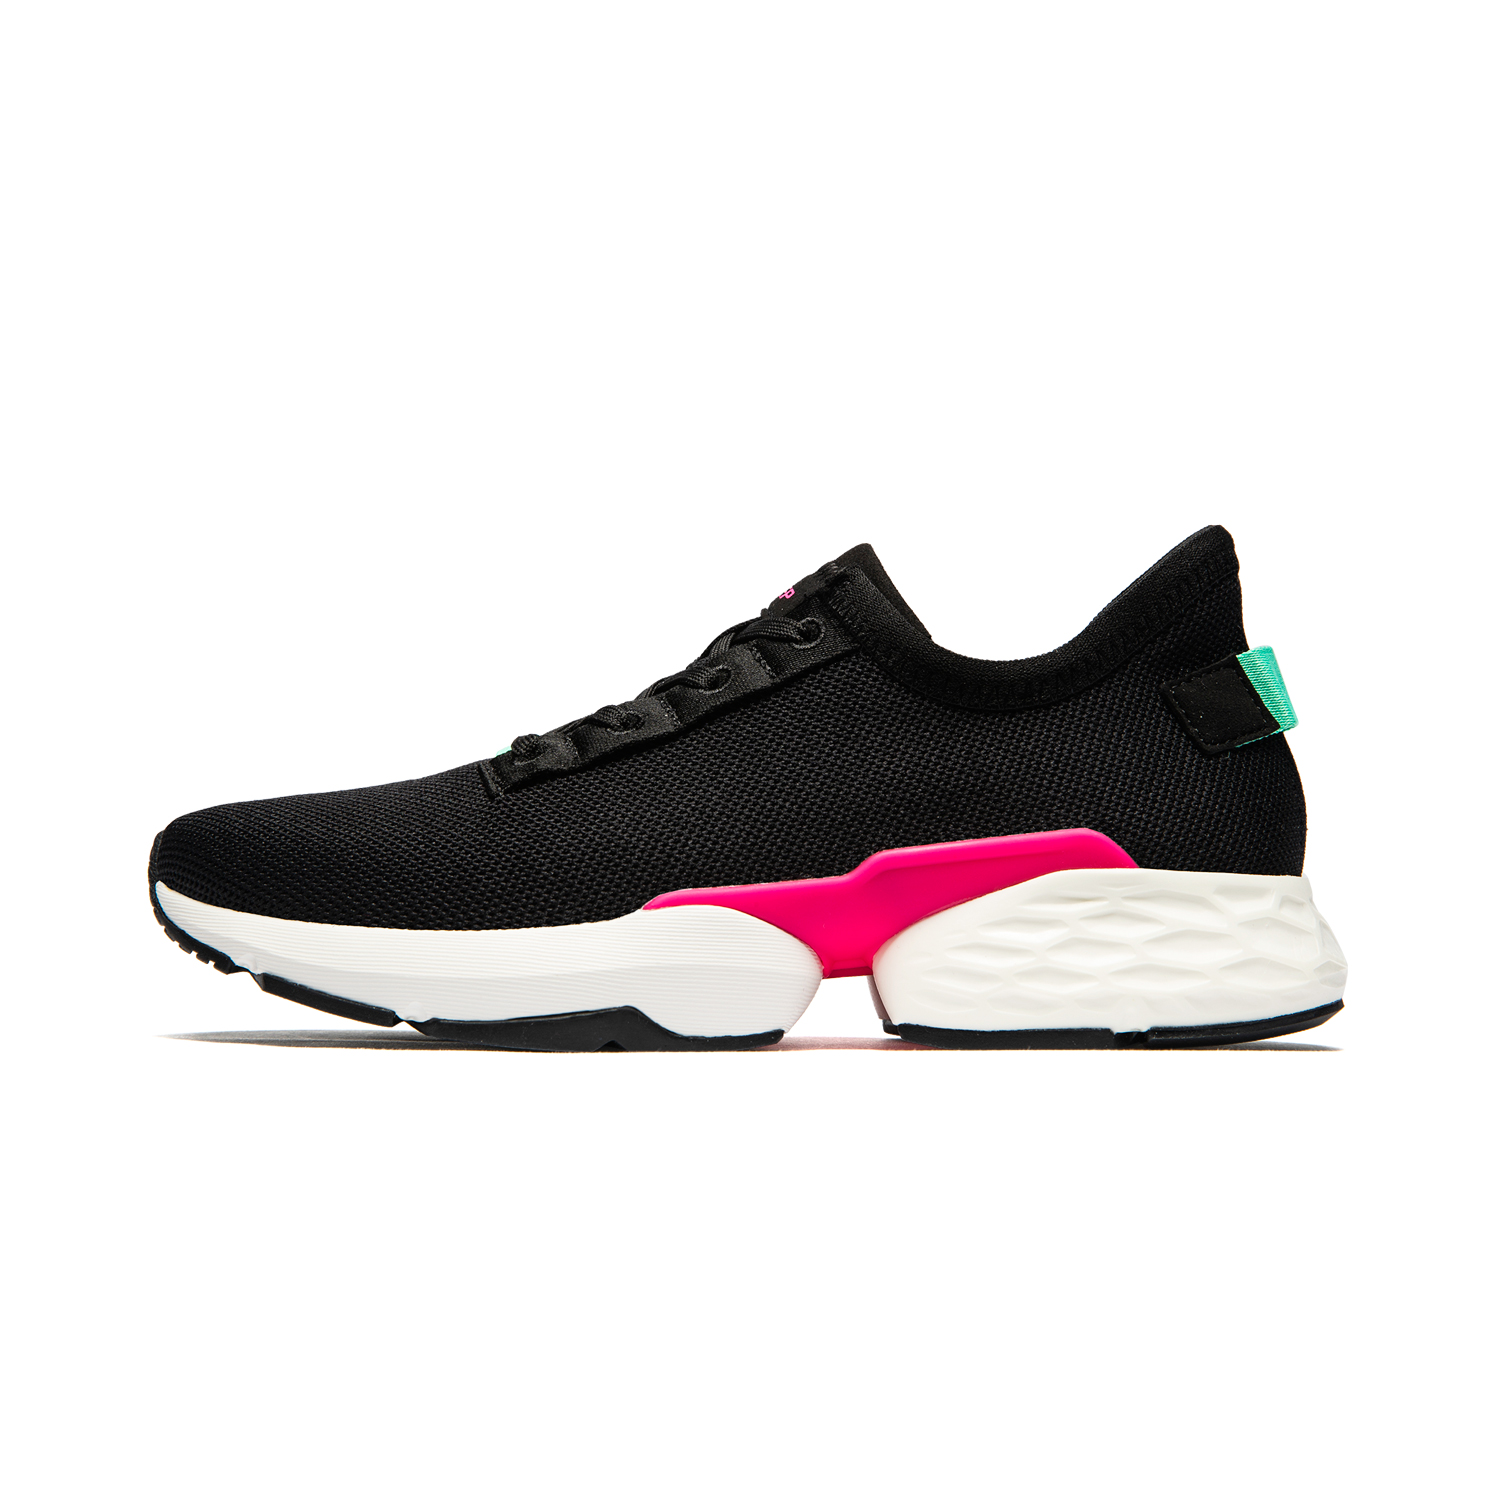 Women's urban running shoes